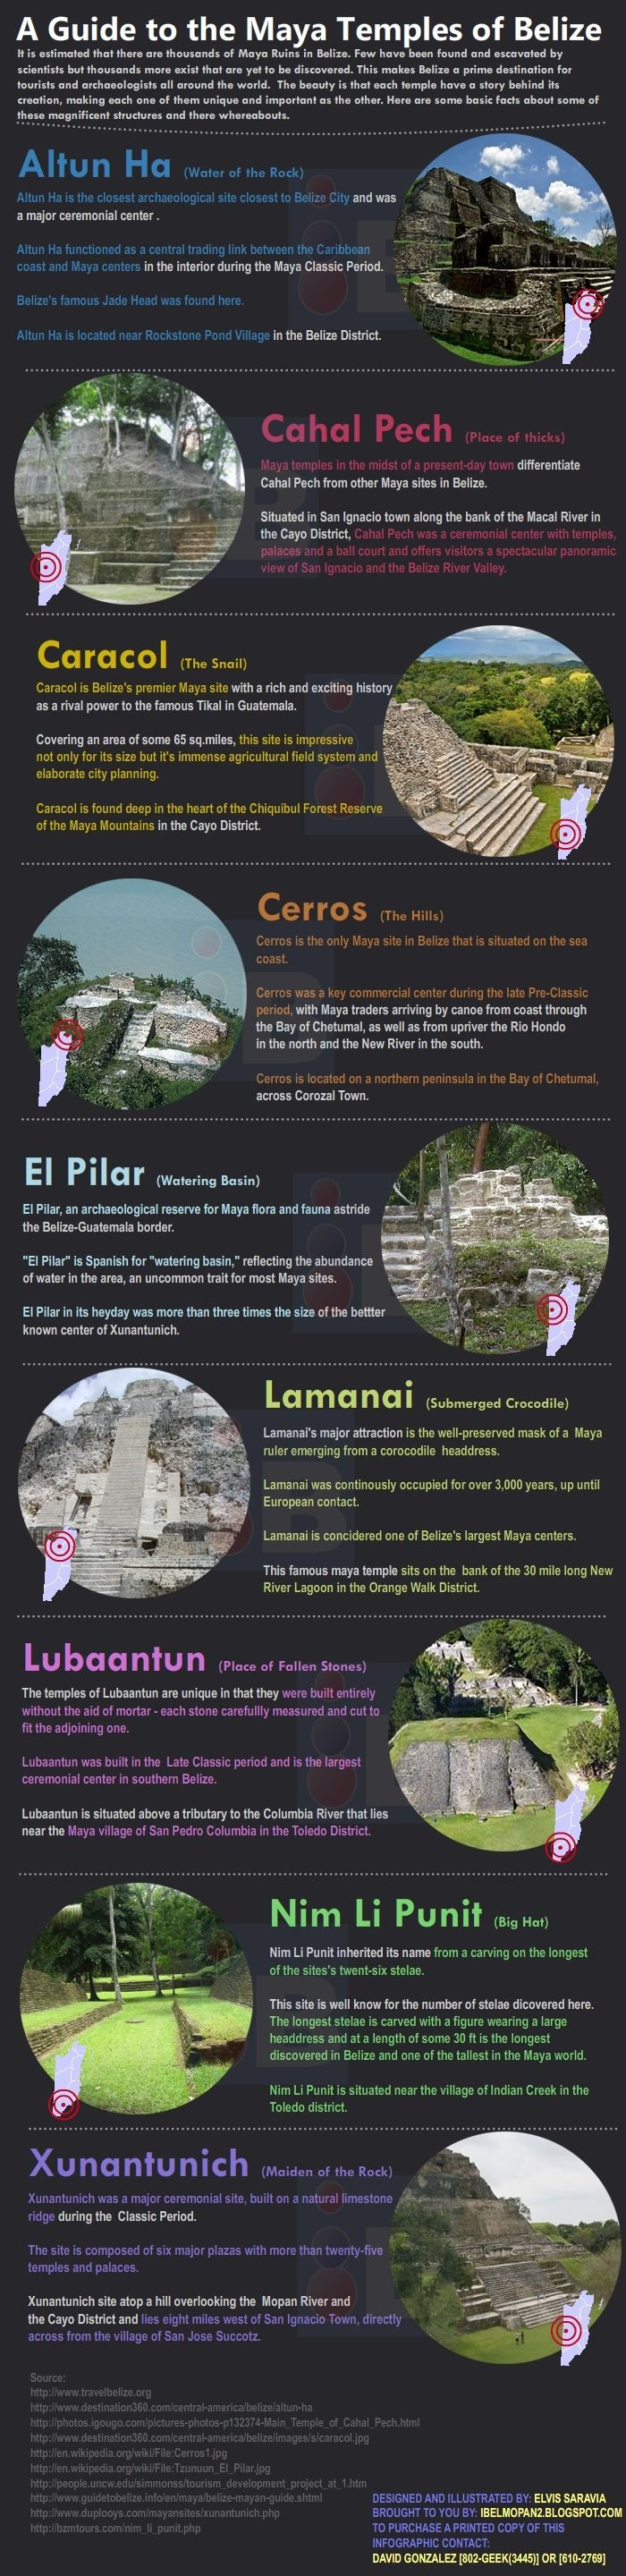 Mayan Temples of Belize- next time we go I am definitely visiting the Mayan temples!! - Explore the World with Travel Nerd Nici, one Country at a Time. http://TravelNerdNici.com